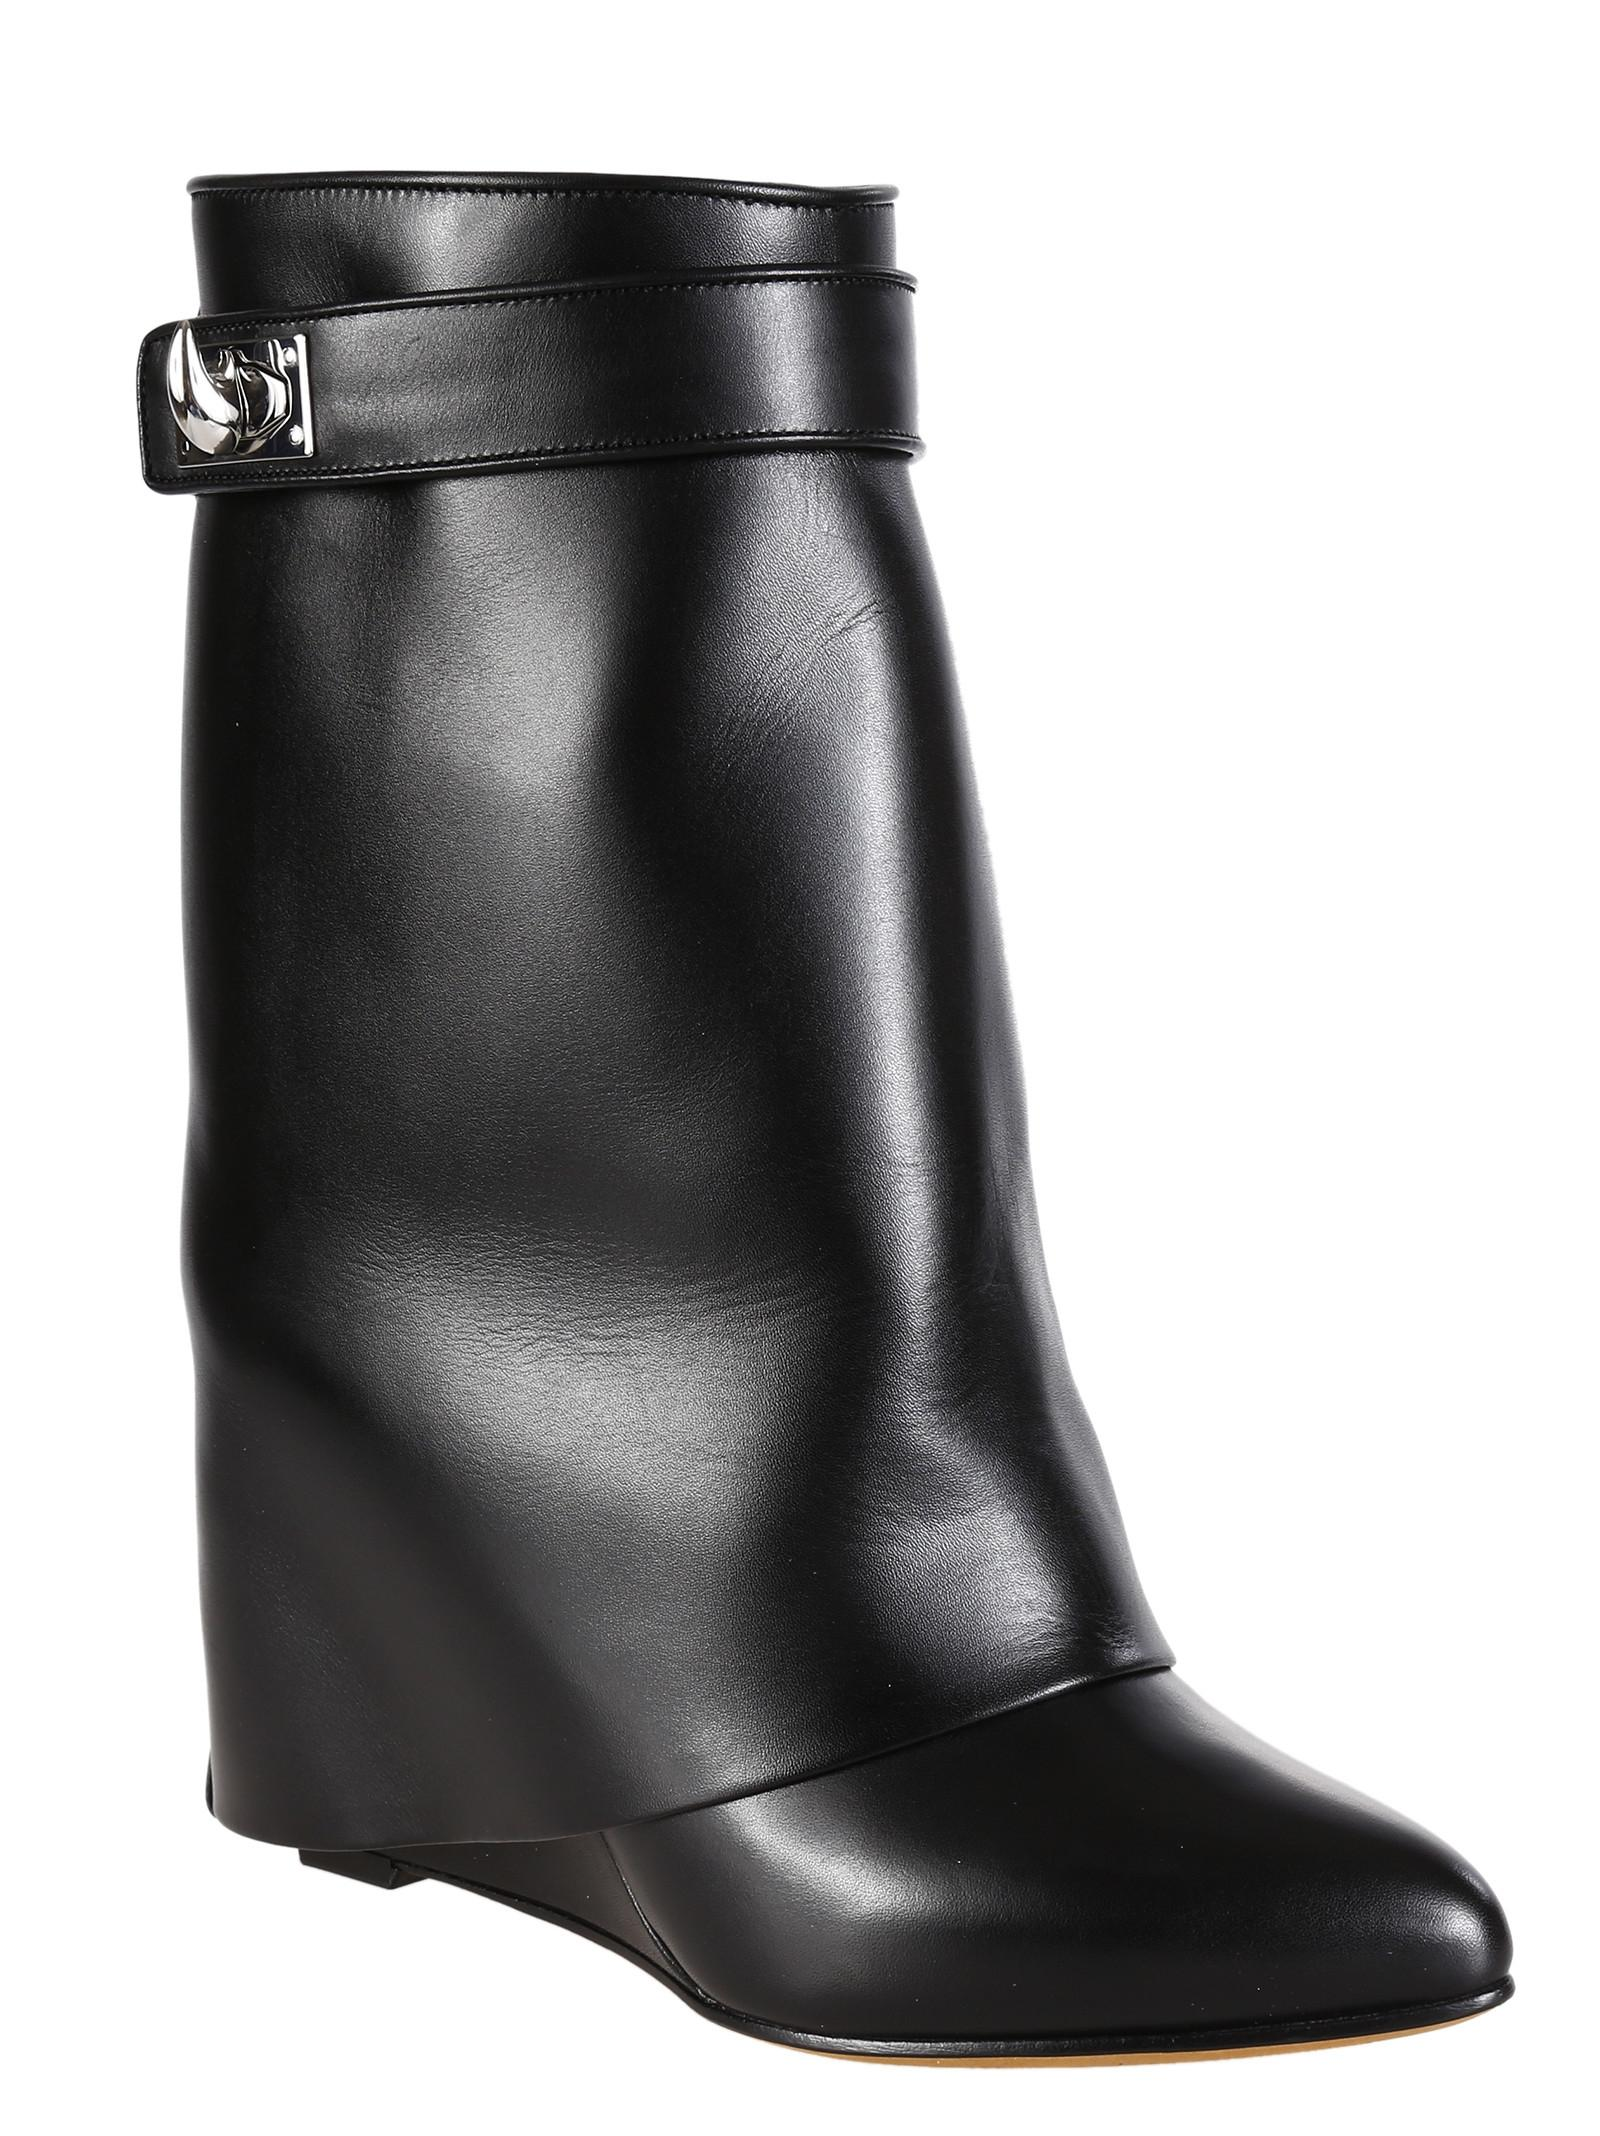 Givenchy Black Lock Leather Mid Calf Wedge Boots/Booties Size US 9 Regular (M, B)